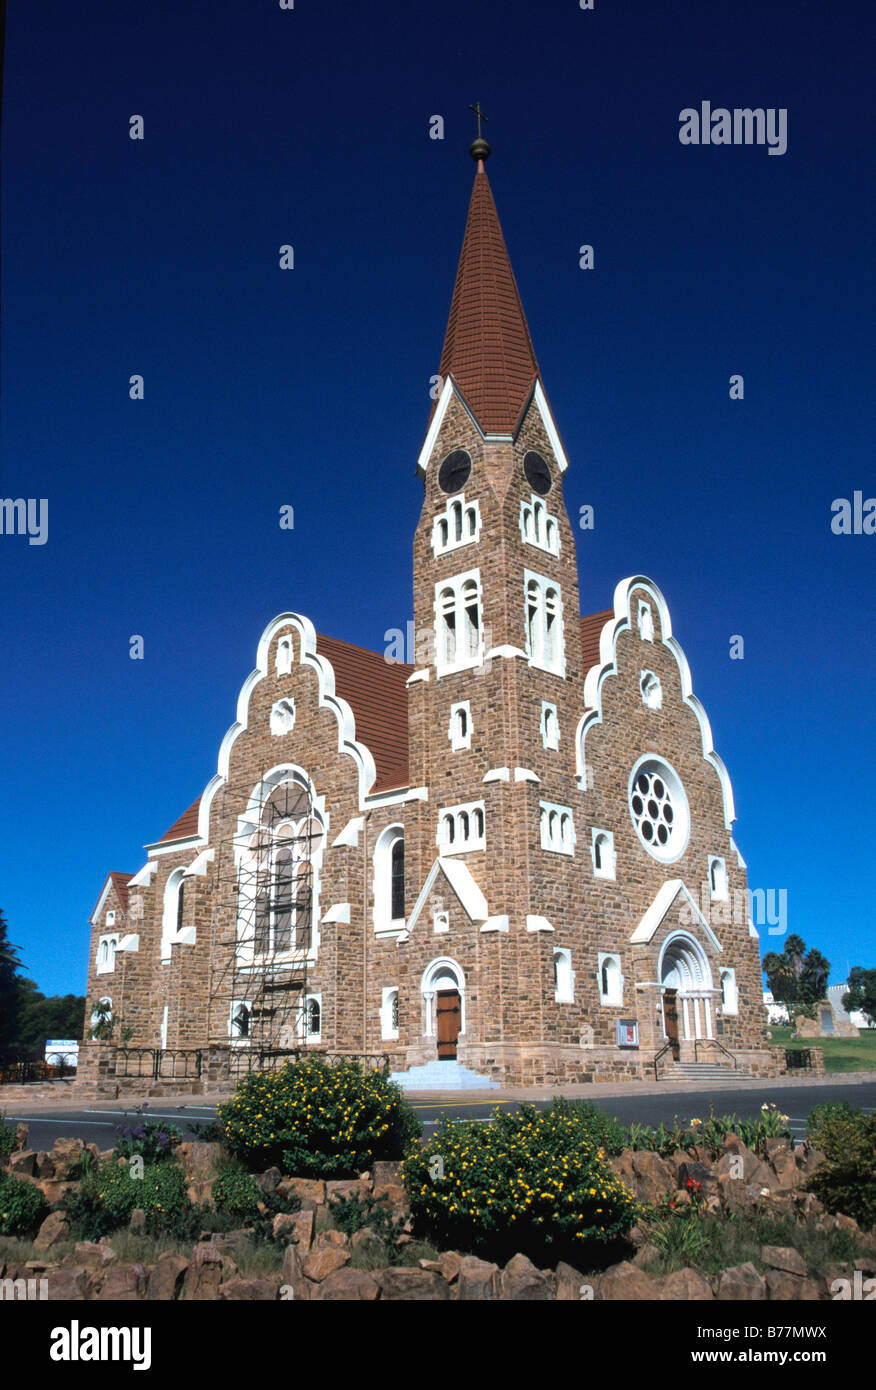 Christ church, Windhoek, Namibia, Africa - Stock Image